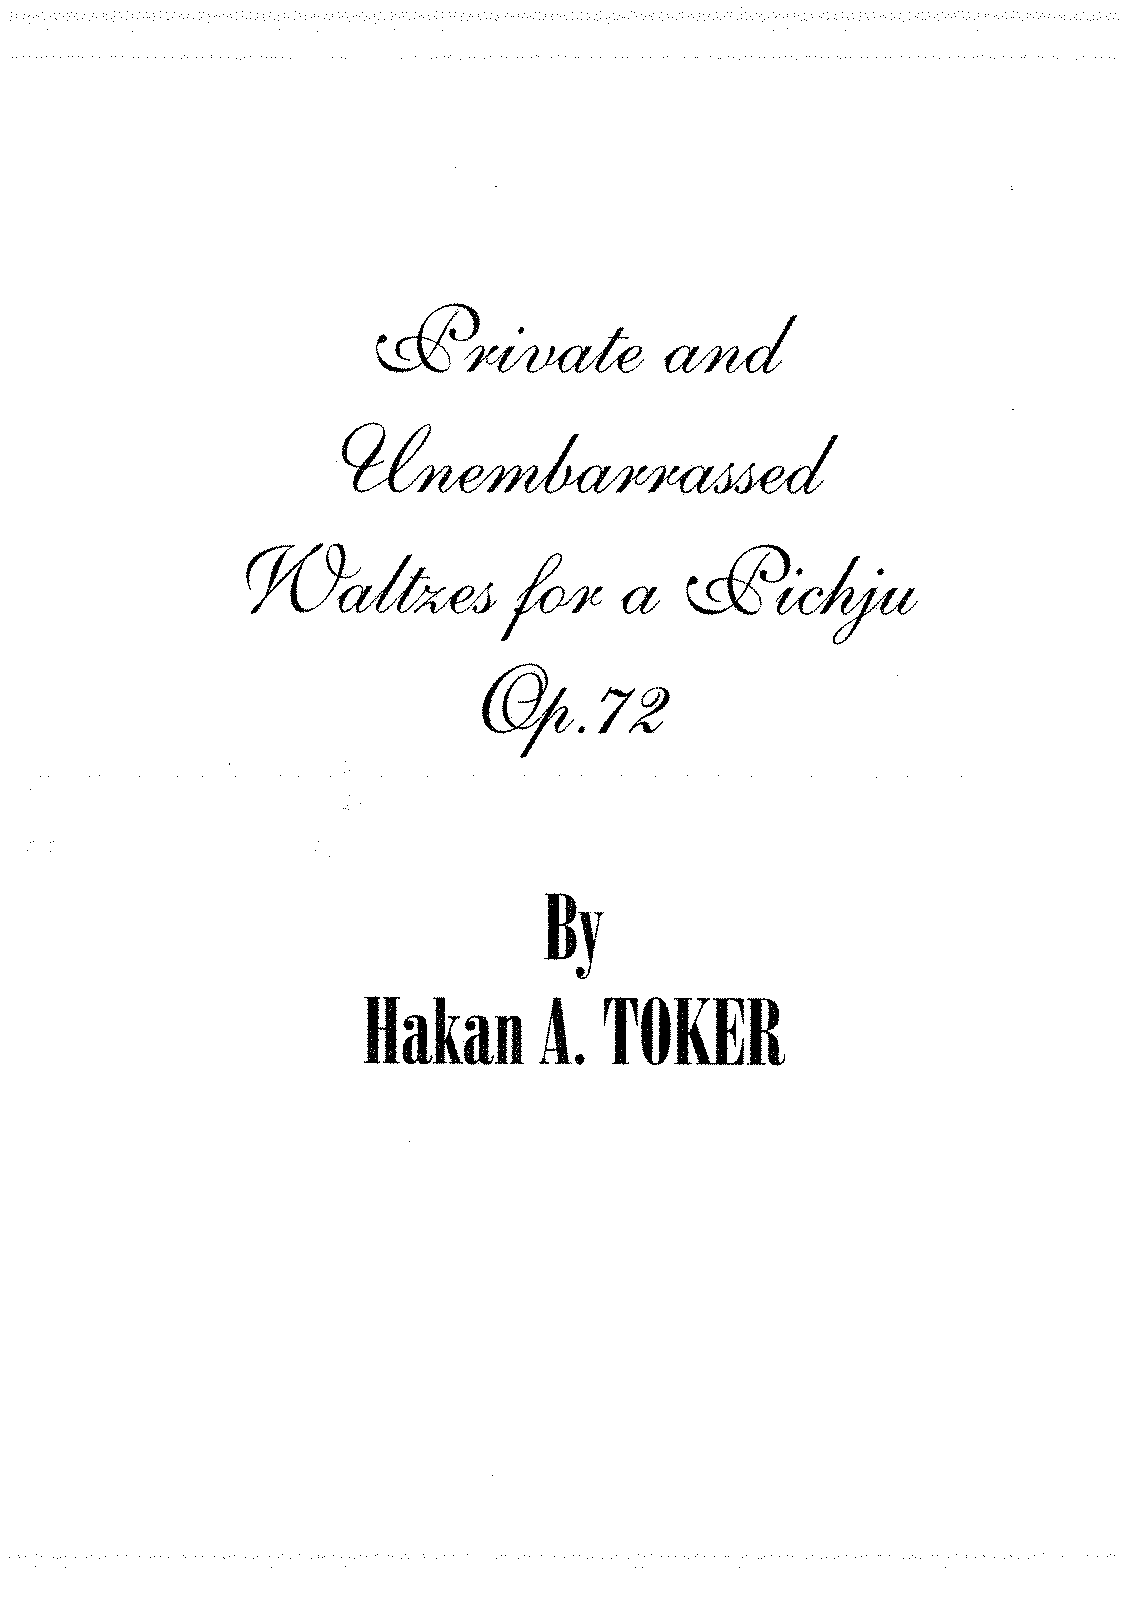 PMLP581086-Private and Unembarrassed Waltzes -better scan.pdf